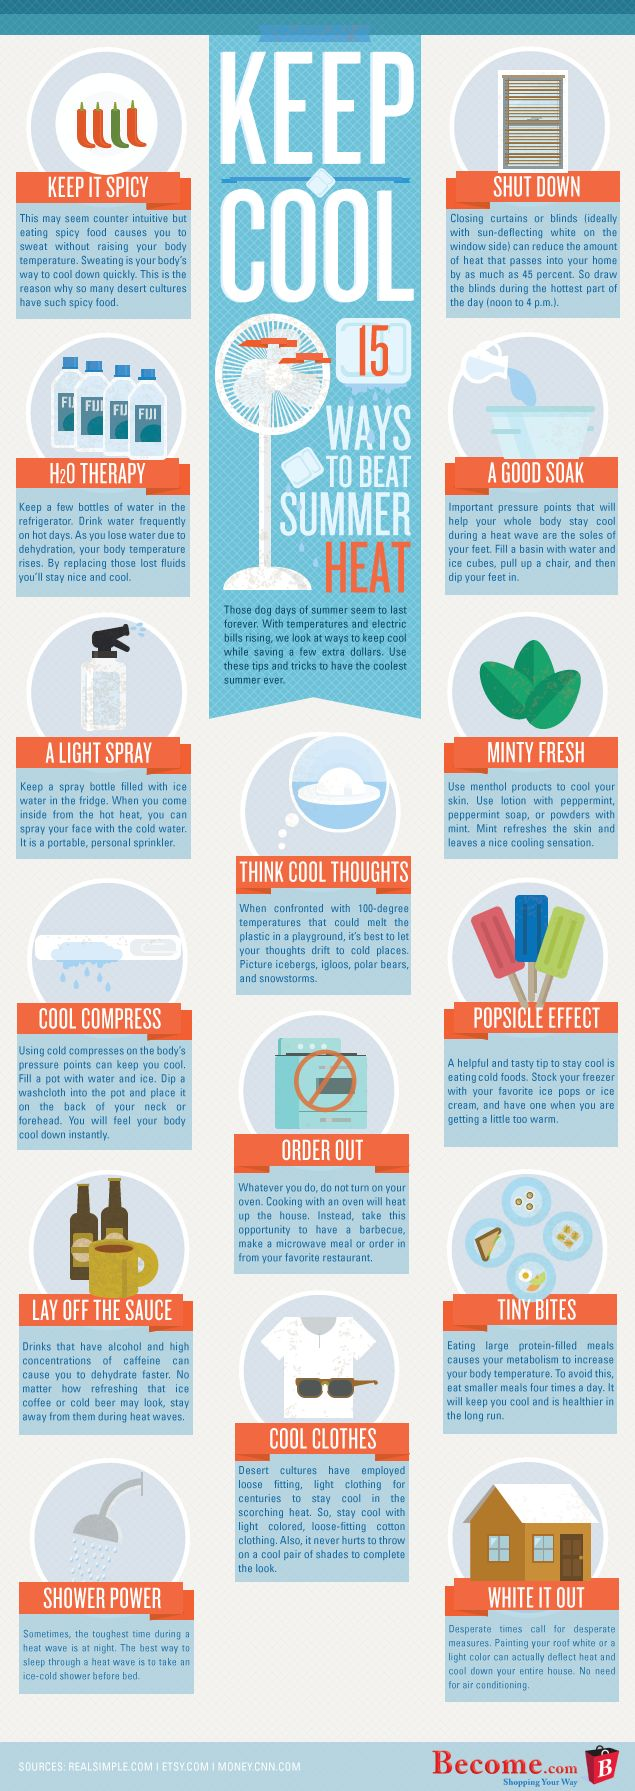 15 Ways to beat summer heat - Infographic